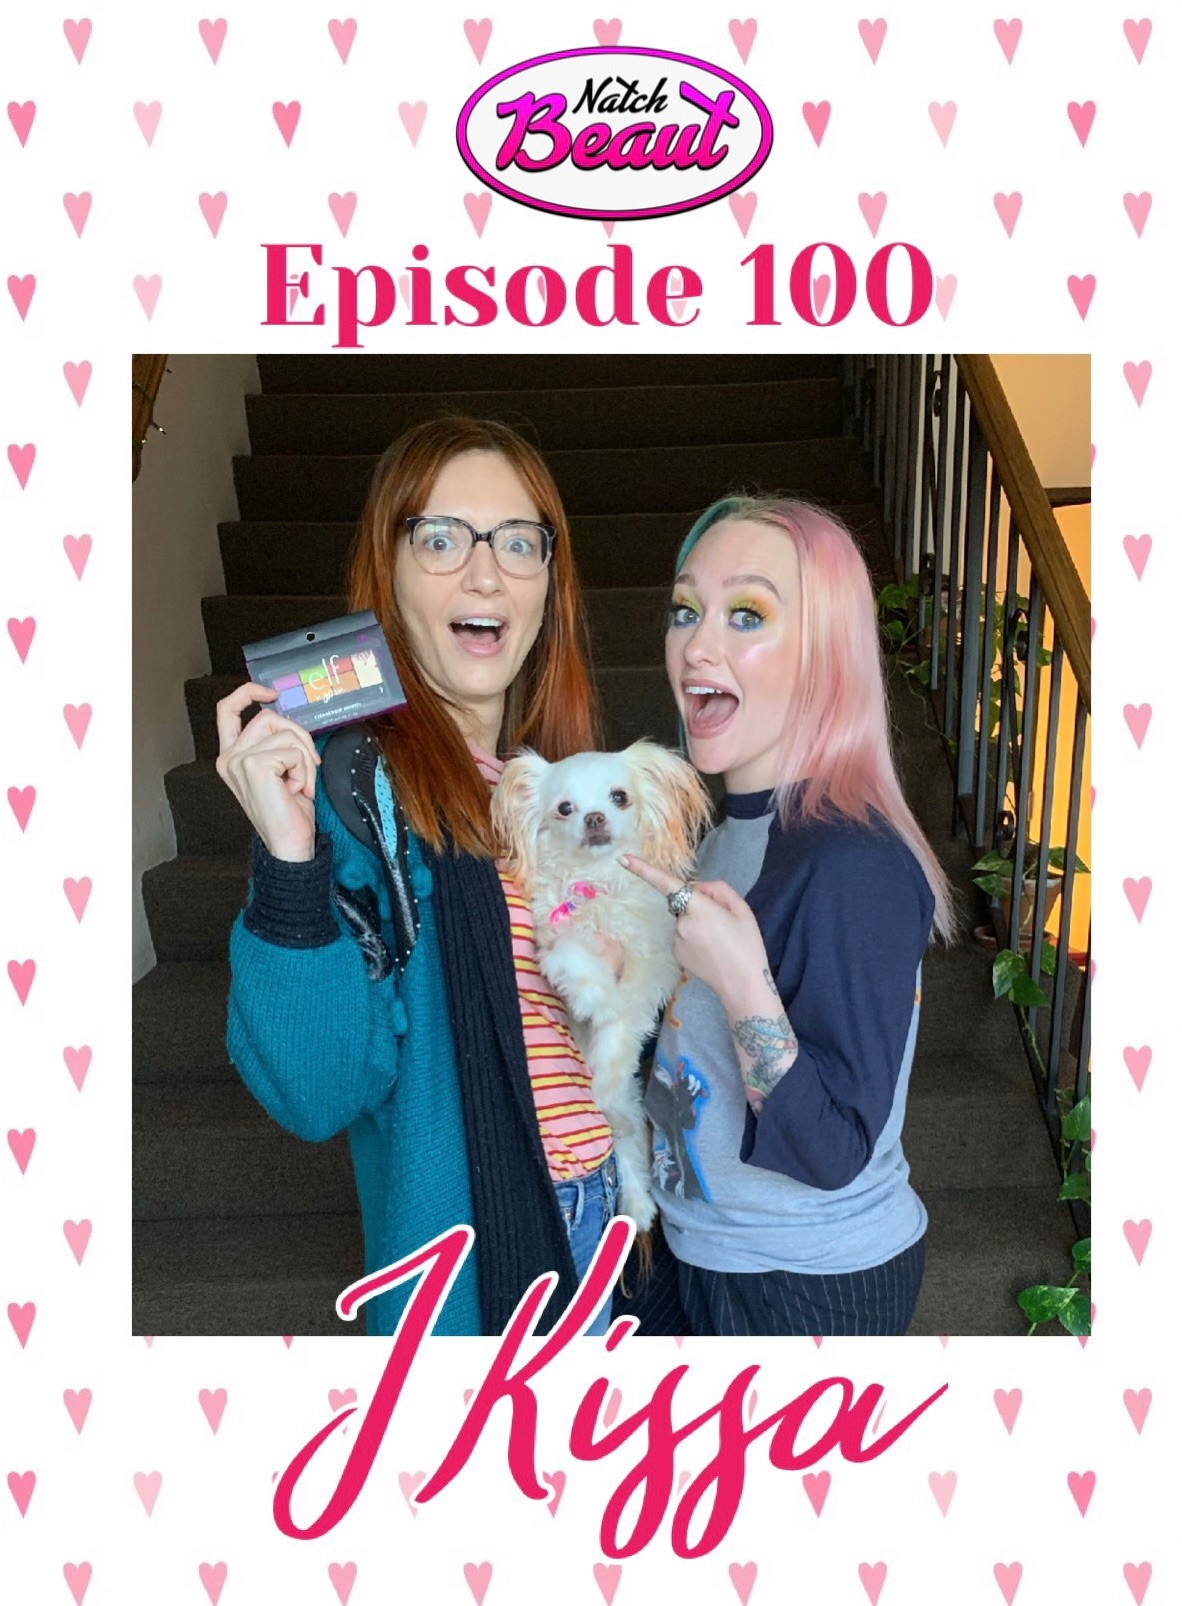 The 100th Episode With Jkissa Episode Guide Natch Beaut